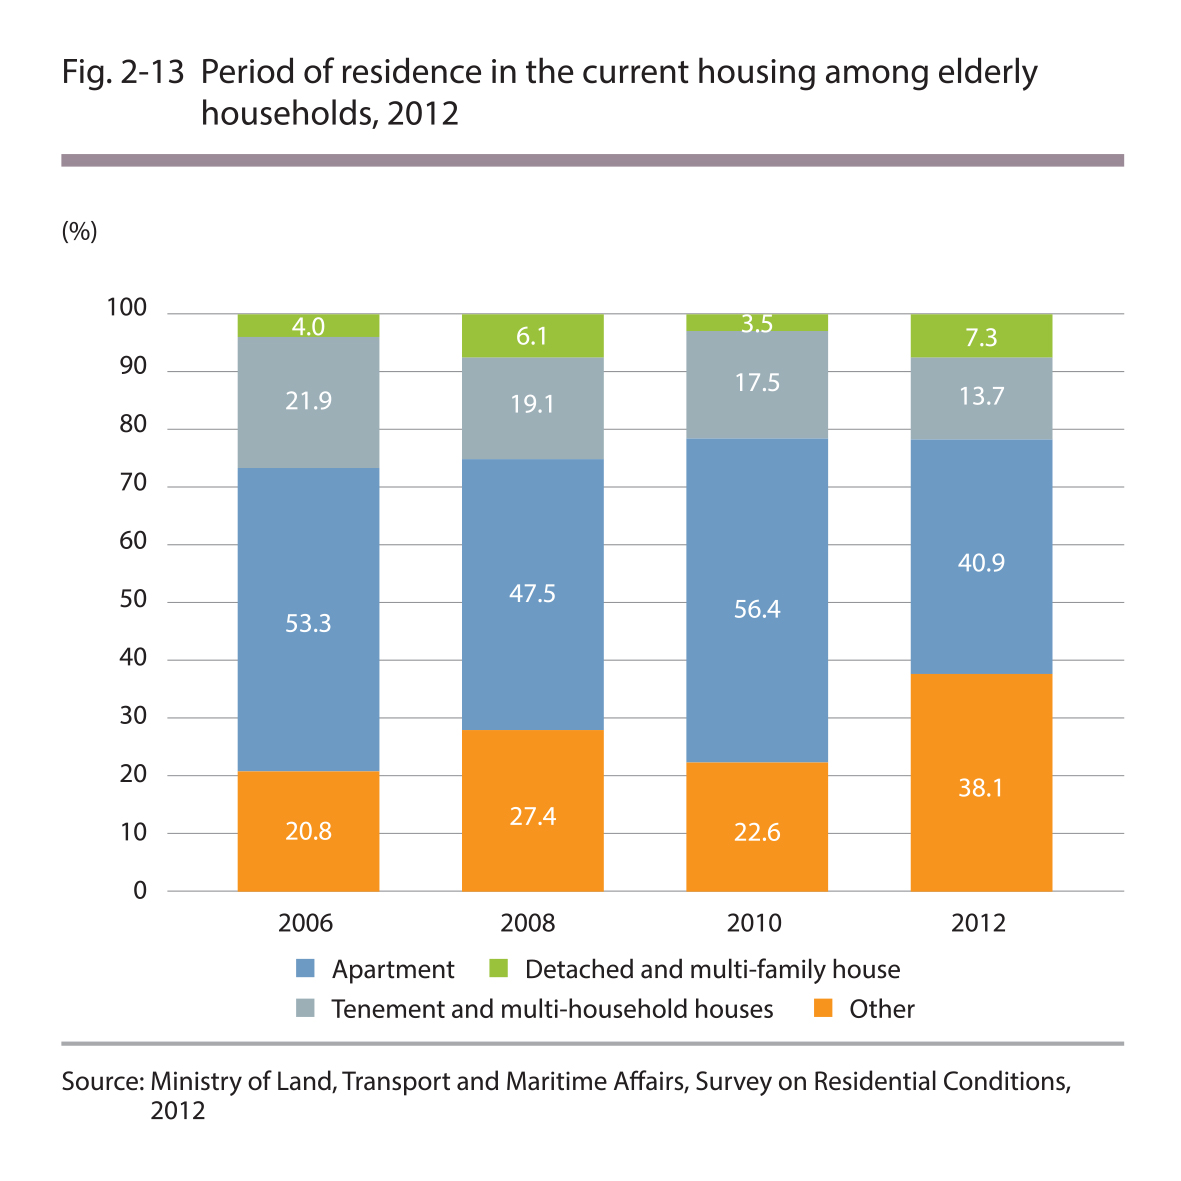 Period of residence in the current housing among elderly households, 2012